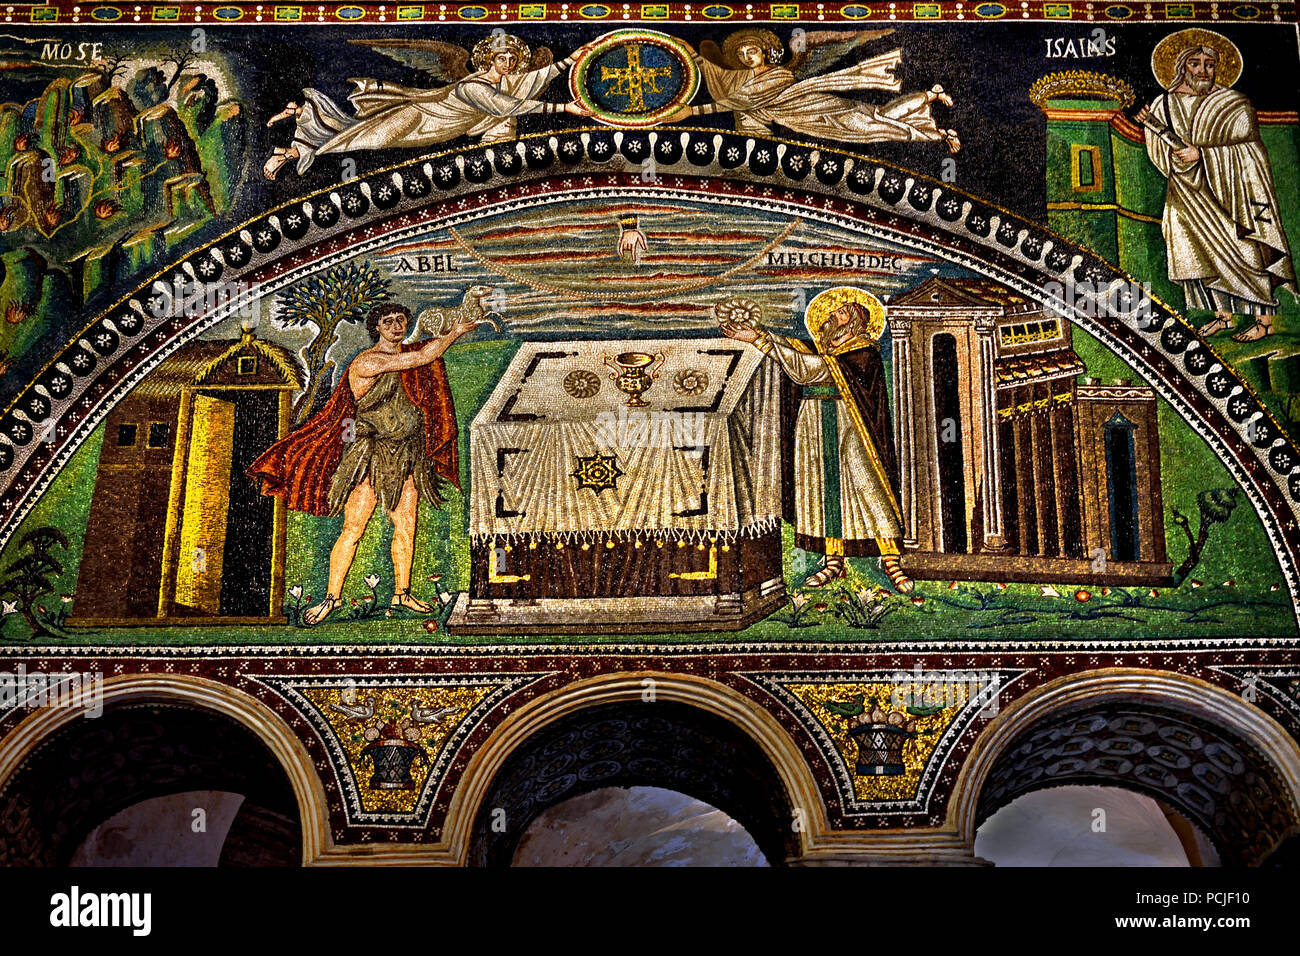 Sacrifice of Abel and Melchisedek in the Basilica of San Vitale 547 AD 6th Century in Ravenna - Mosaics ( late Roman and Byzantine architecture,) Emilia-Romagna - Northern Italy. ( UNESCO World Heritage site ) - Stock Image